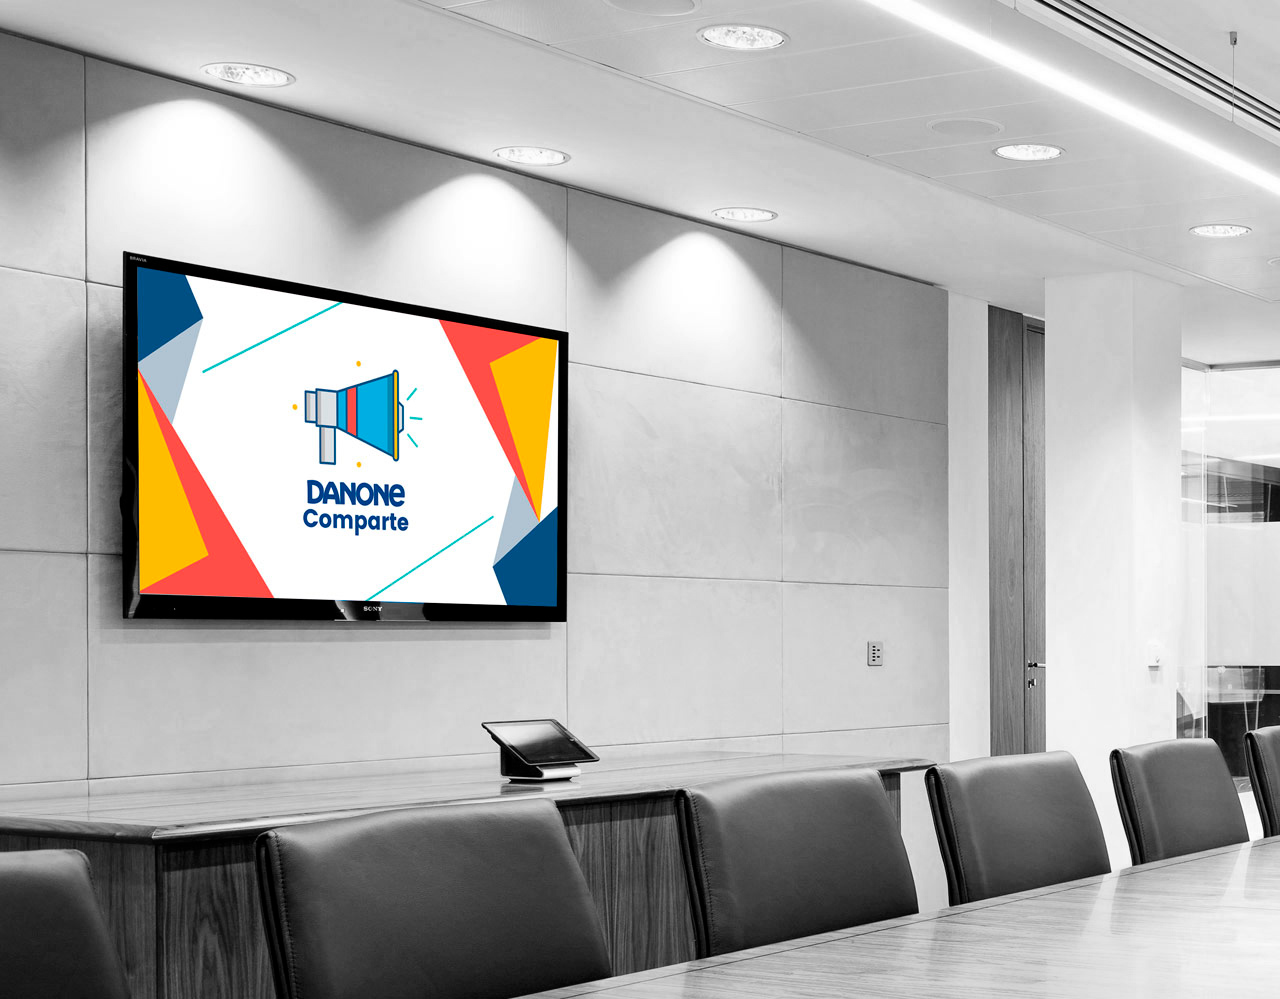 Danone Digital Signage